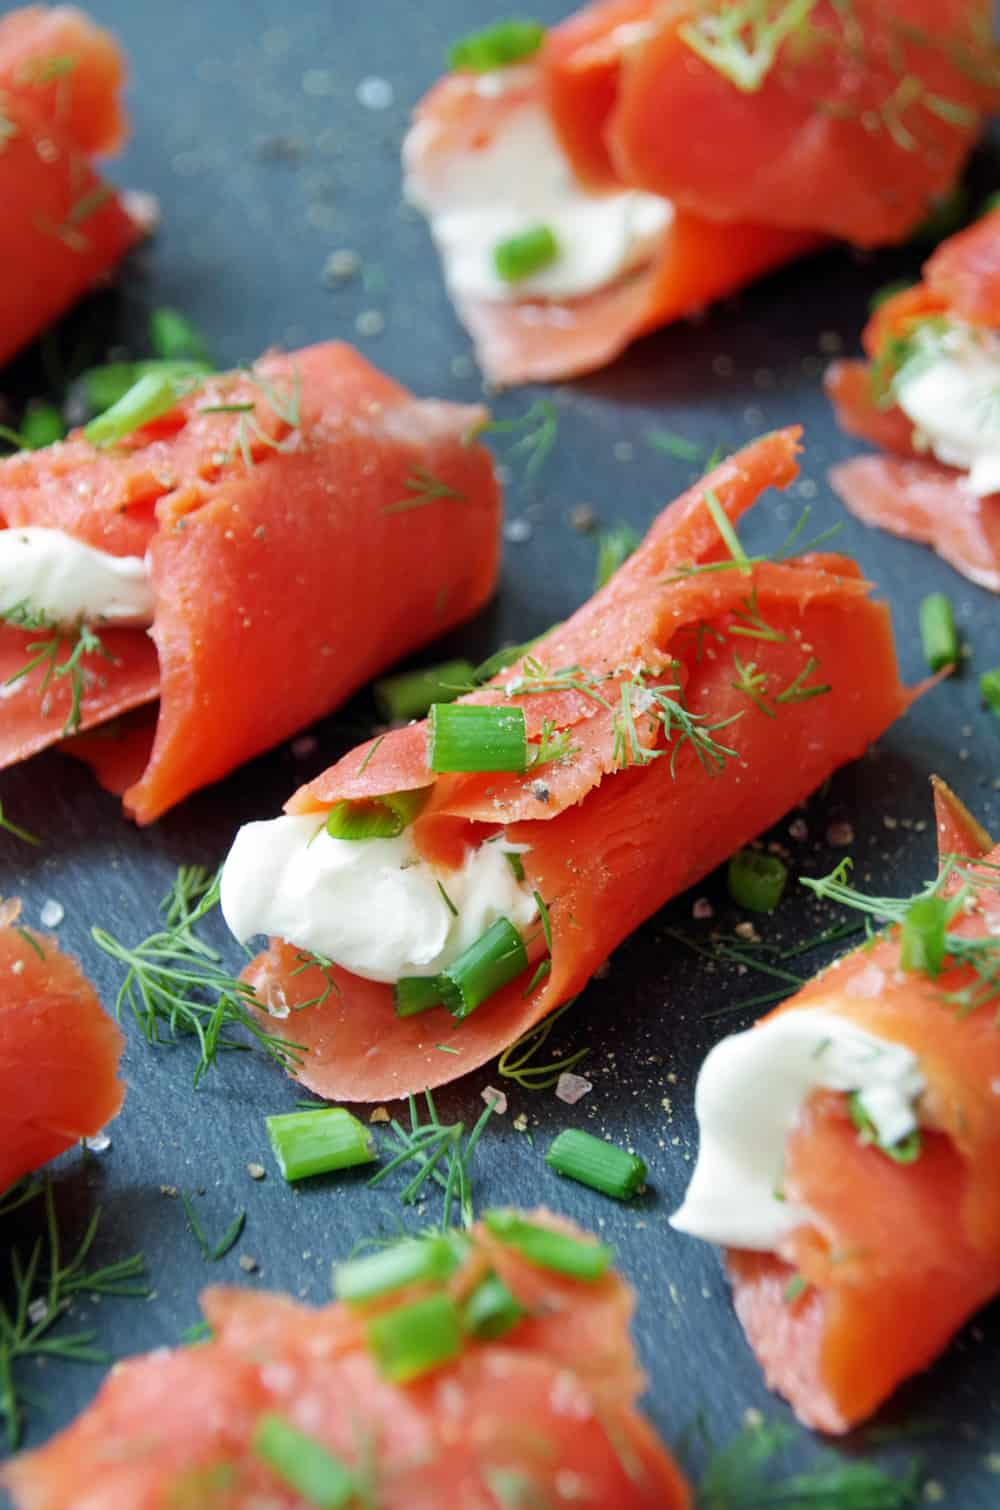 Easy Smoked Salmon Appetizer Recipe in 15 minutes or less